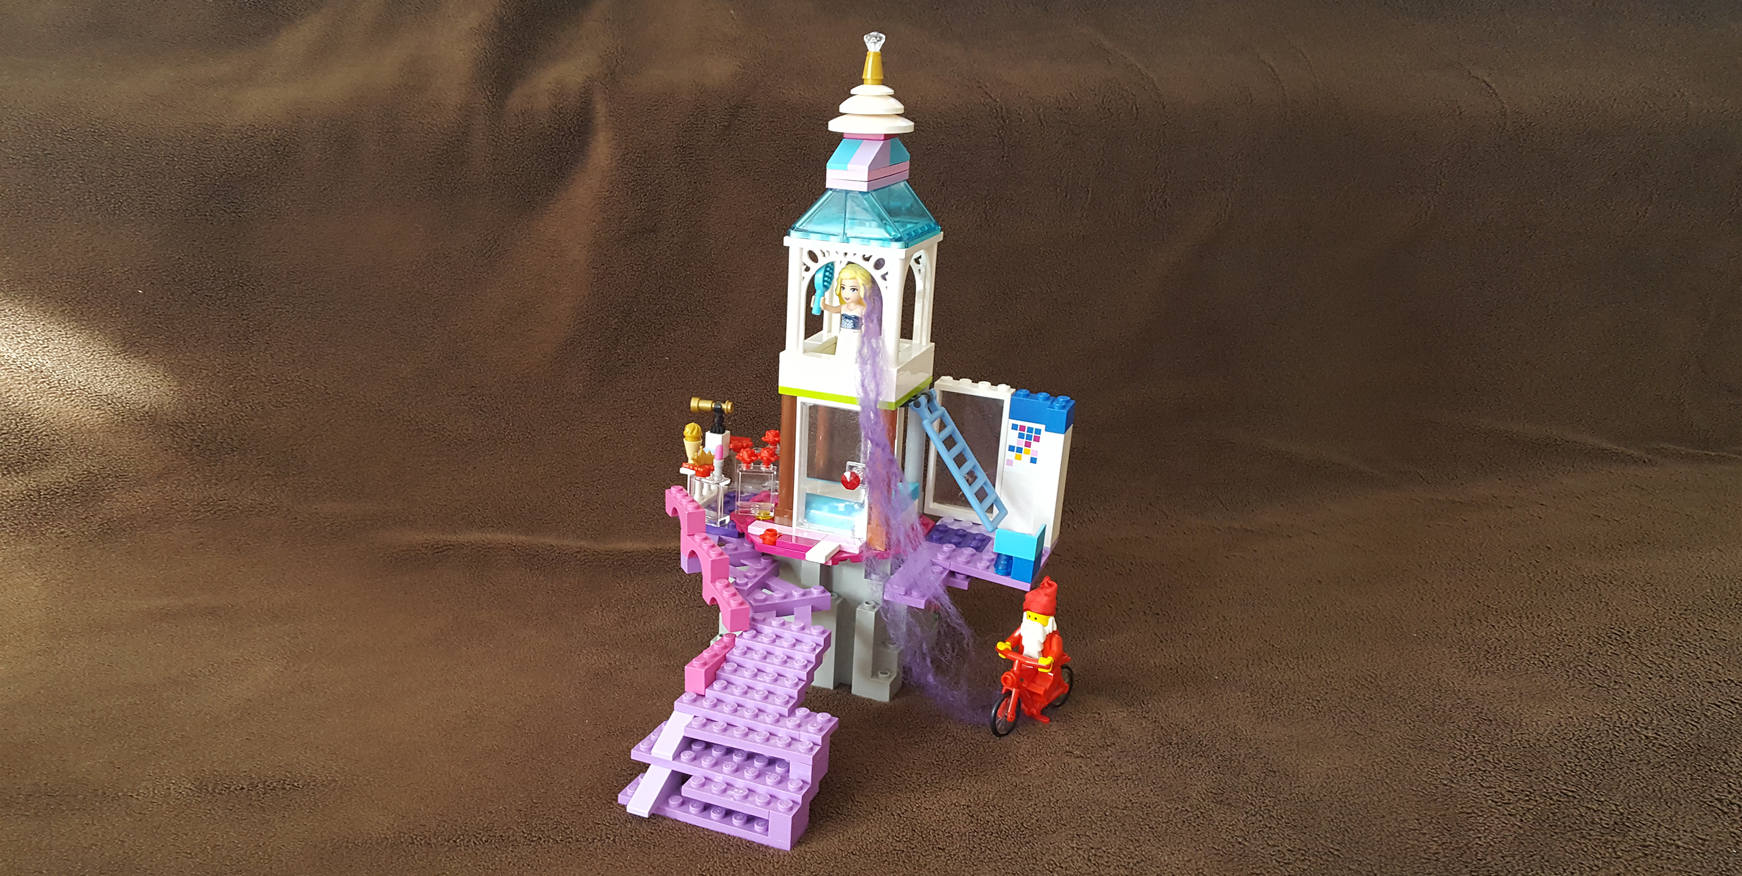 Lego Rapunzel Tower, with a little purple hair.